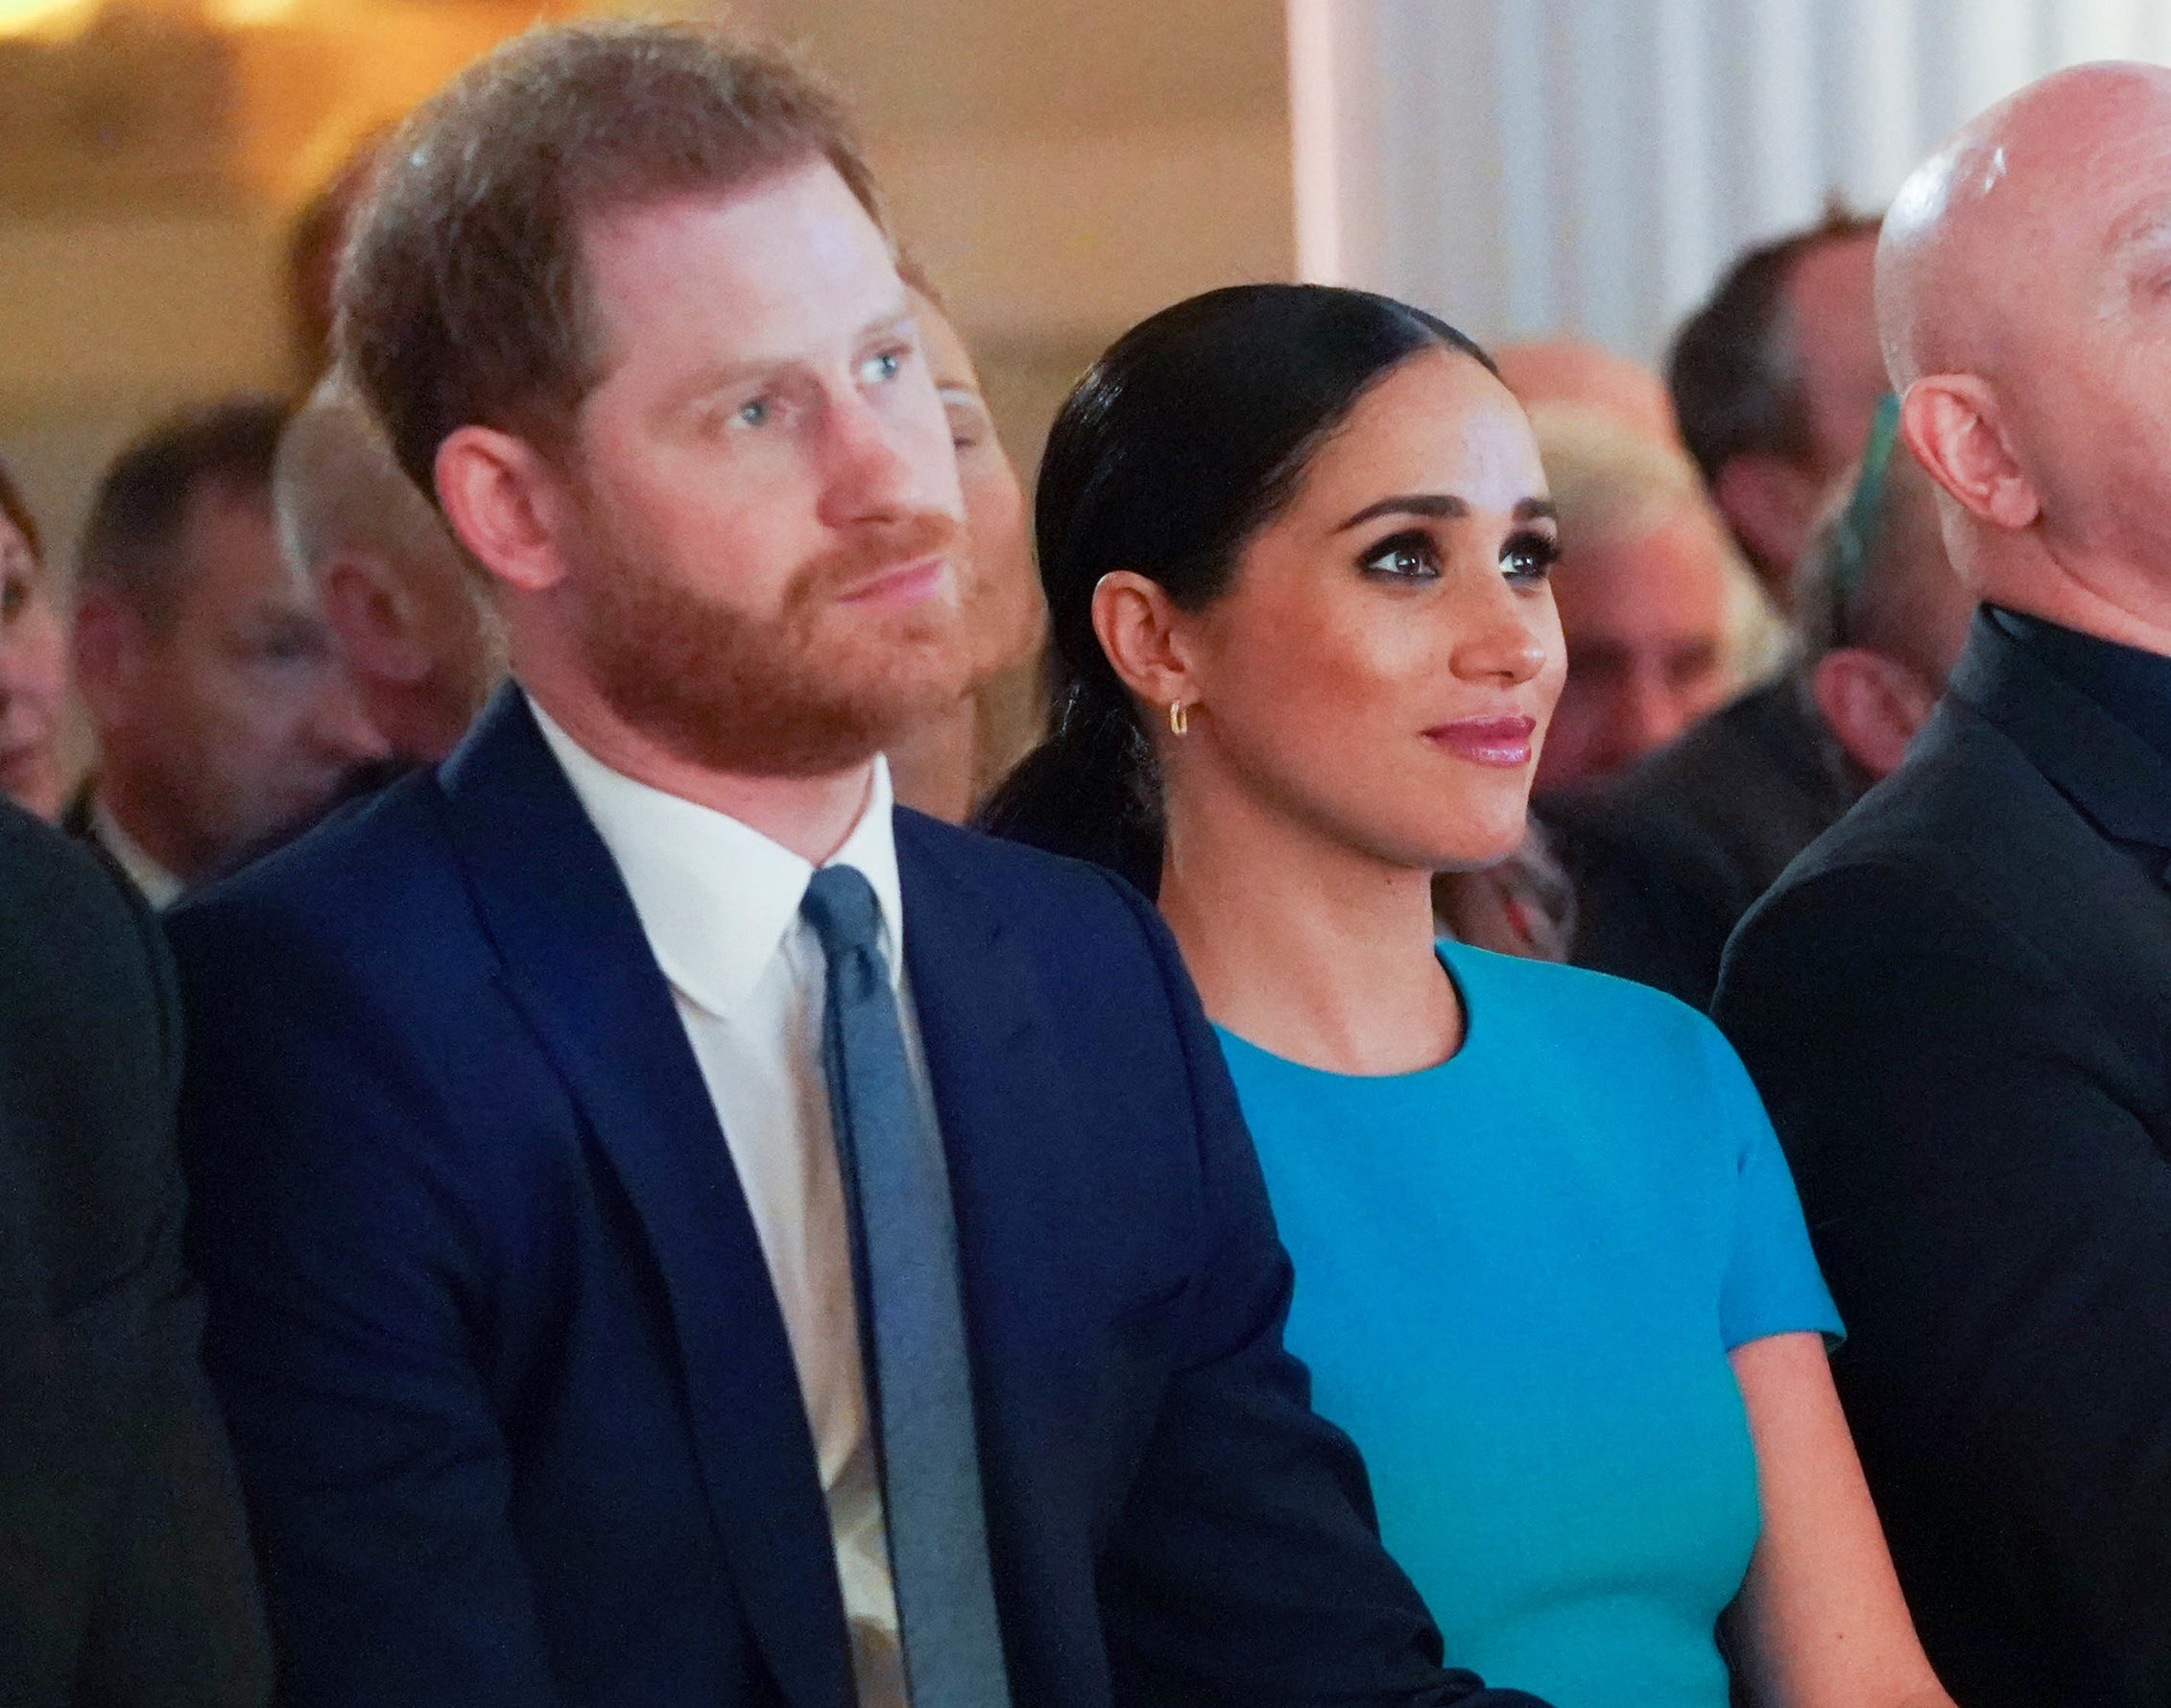 Meghan and Harry sit together at an event